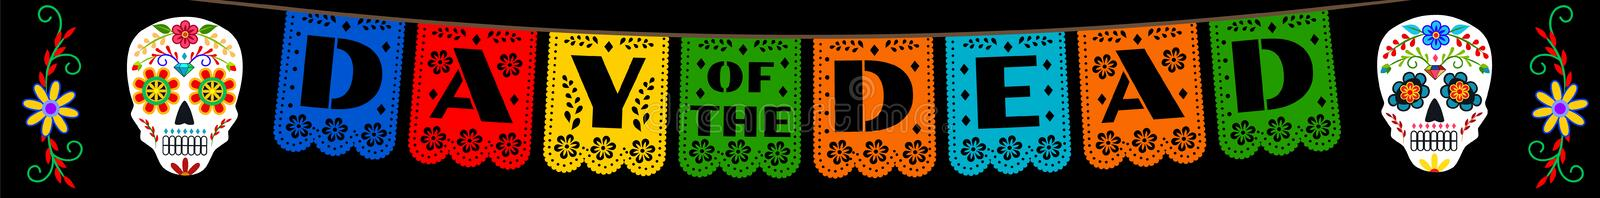 Bunting for Day of the Dead royalty free illustration